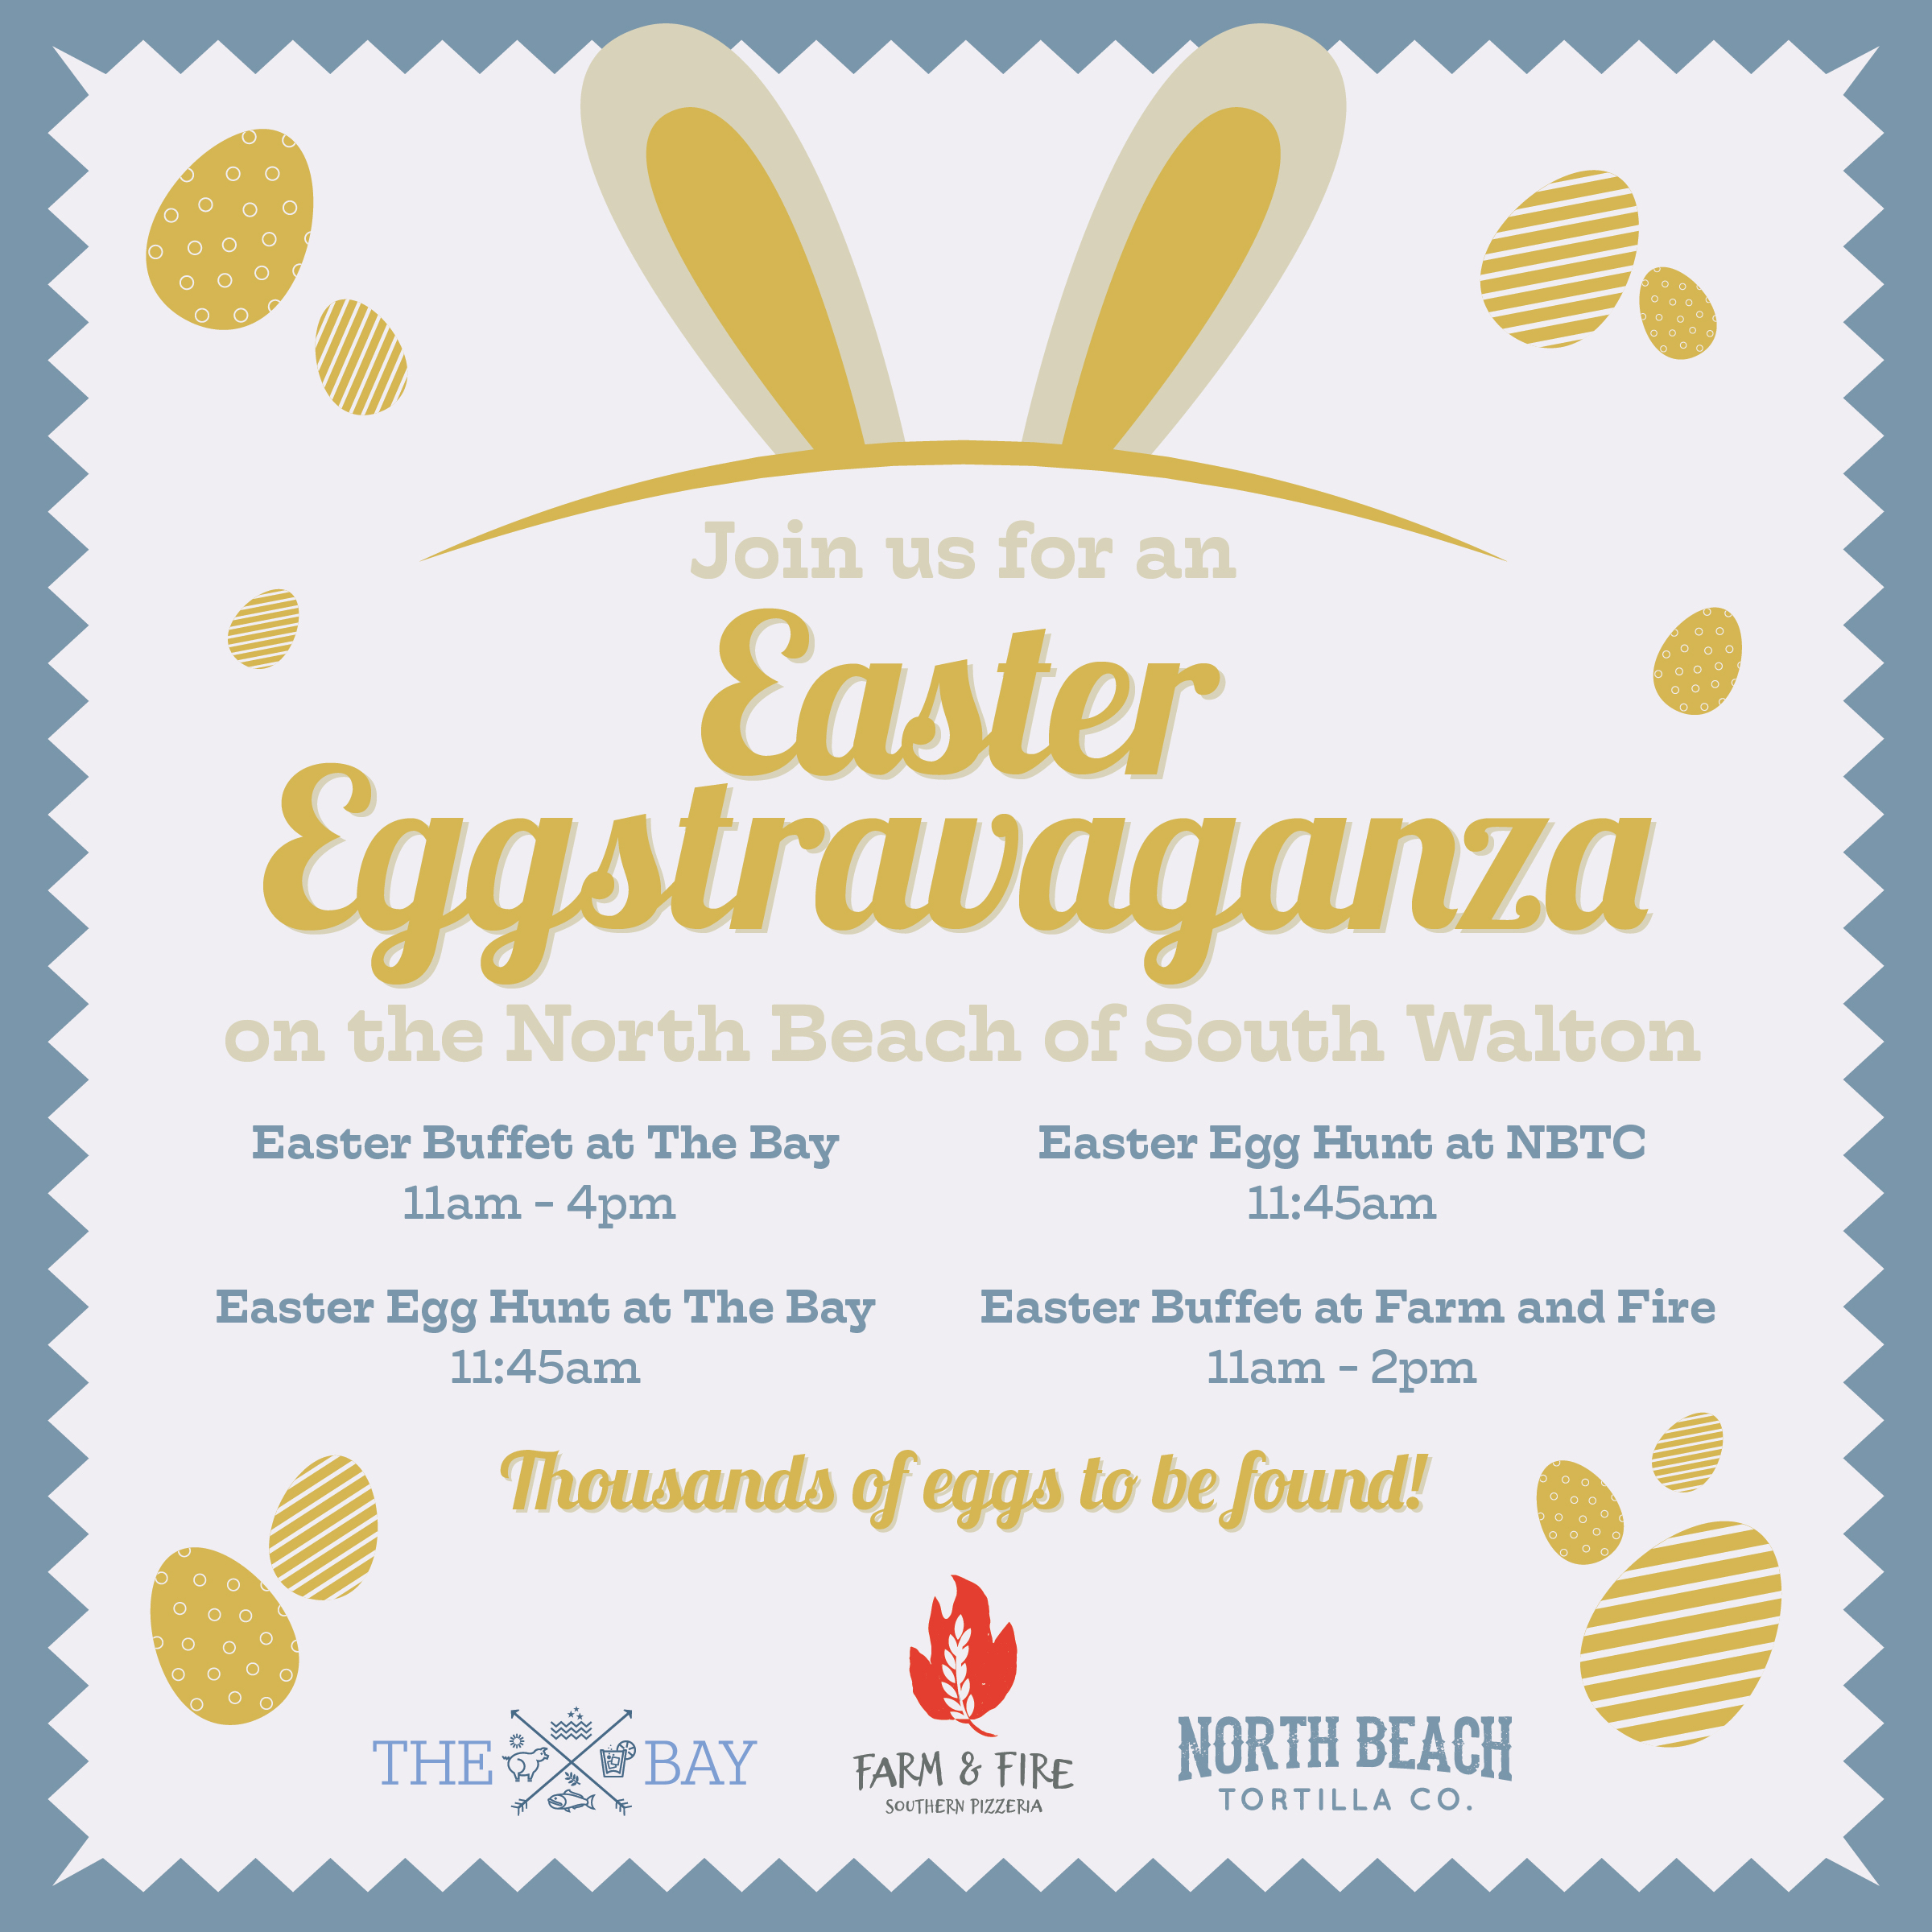 Easter Eggstravaganza on the North Beach of South Walton